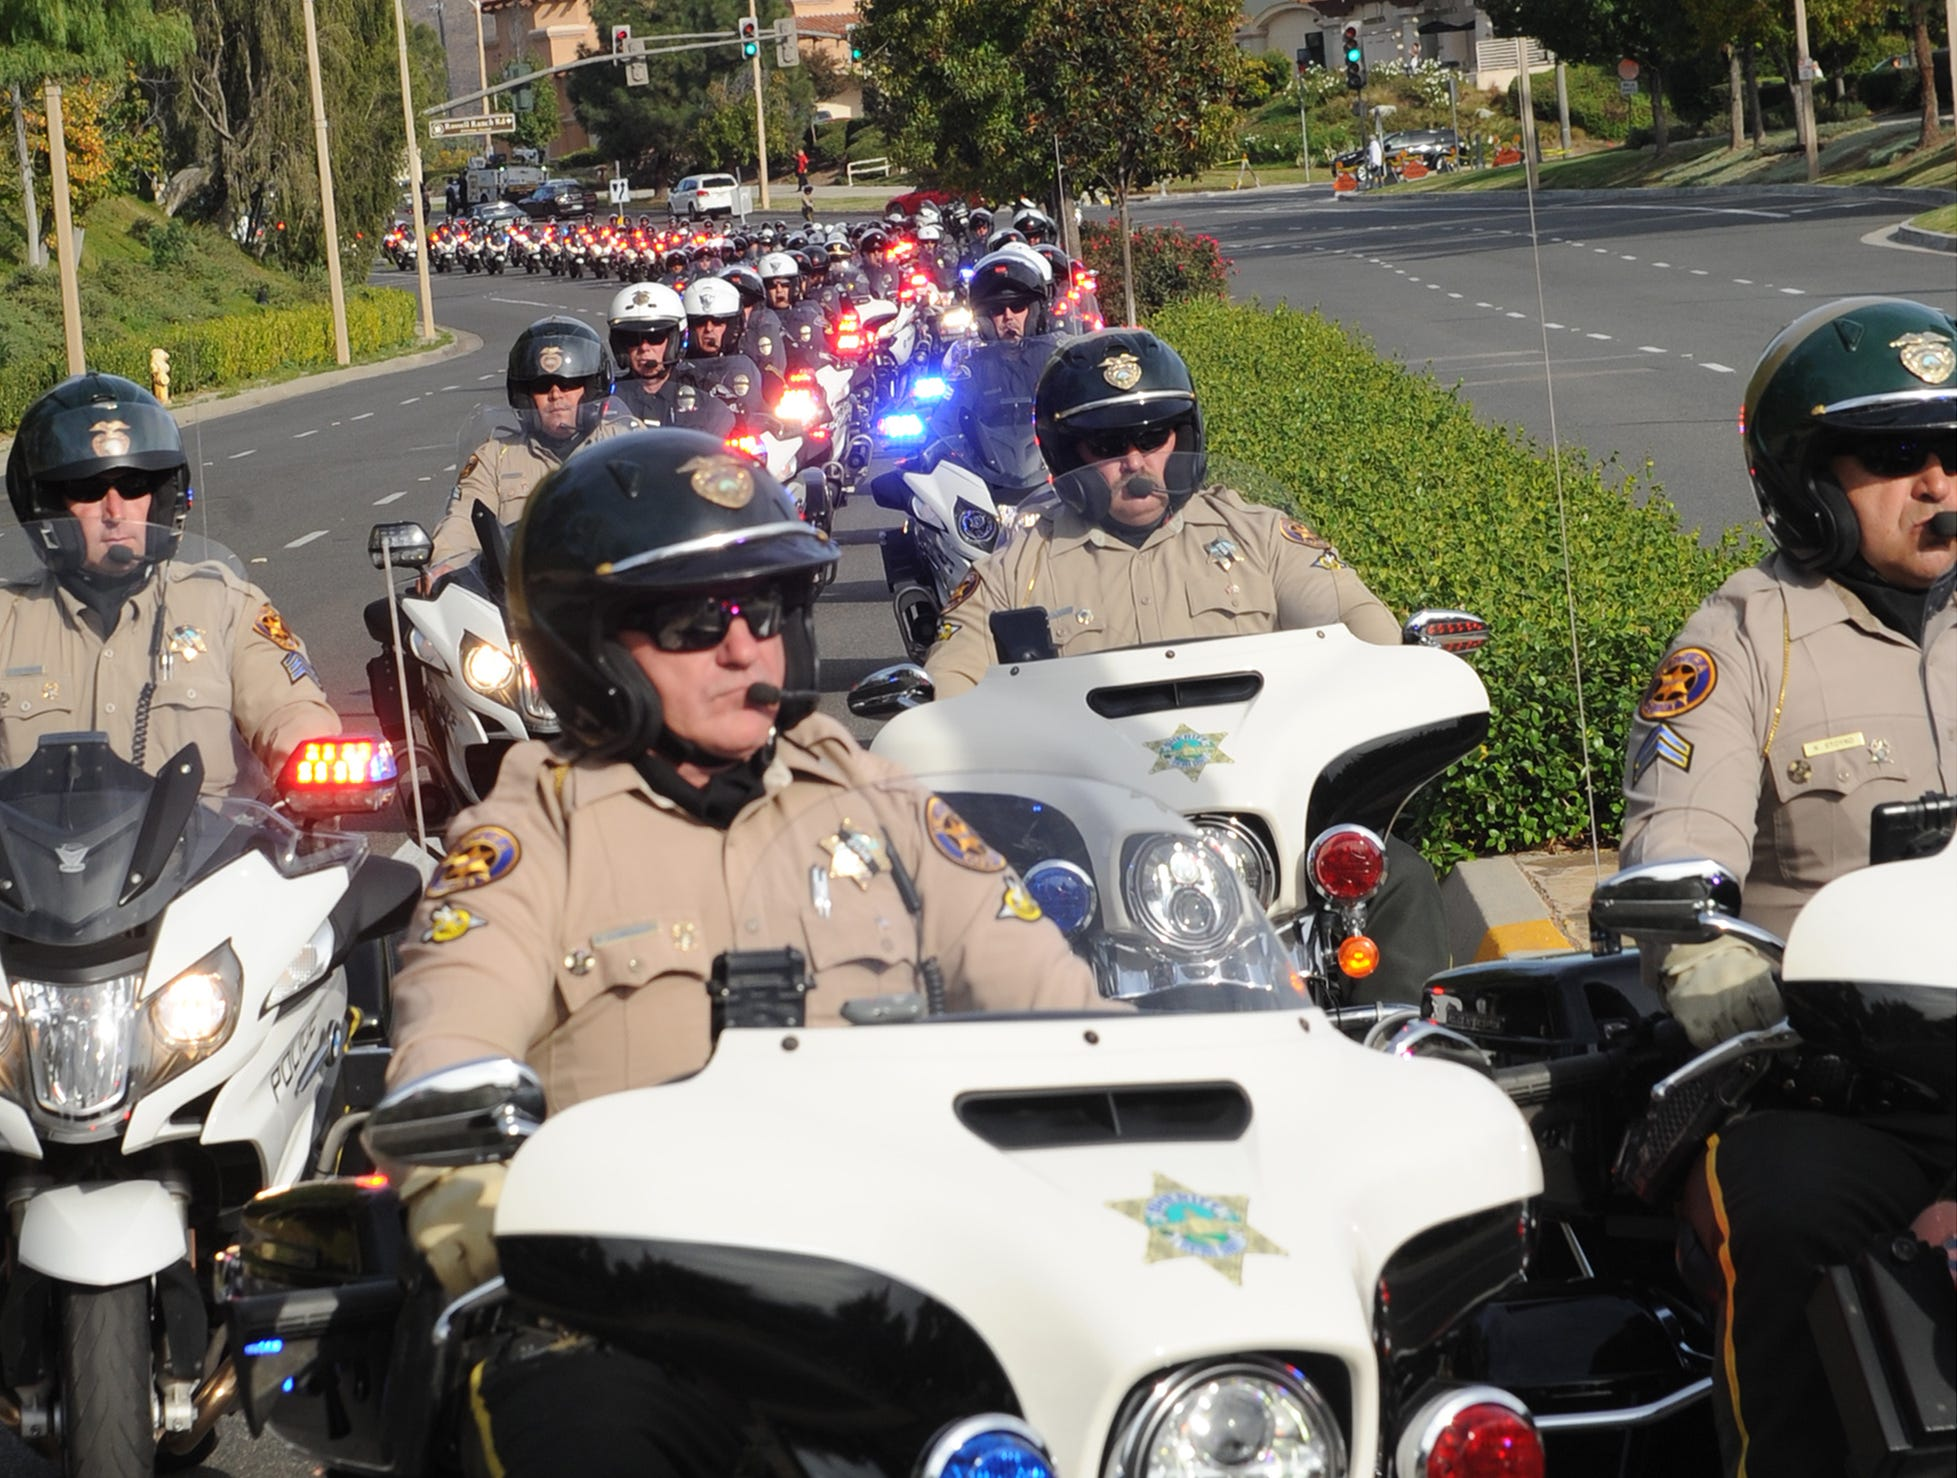 The funeral procession for Ventura County Sheriff's Office Sgt. Ron Helus arrives at Pierce Brothers Valley Oaks  Memorial Park on Thursday in Westlake Village.